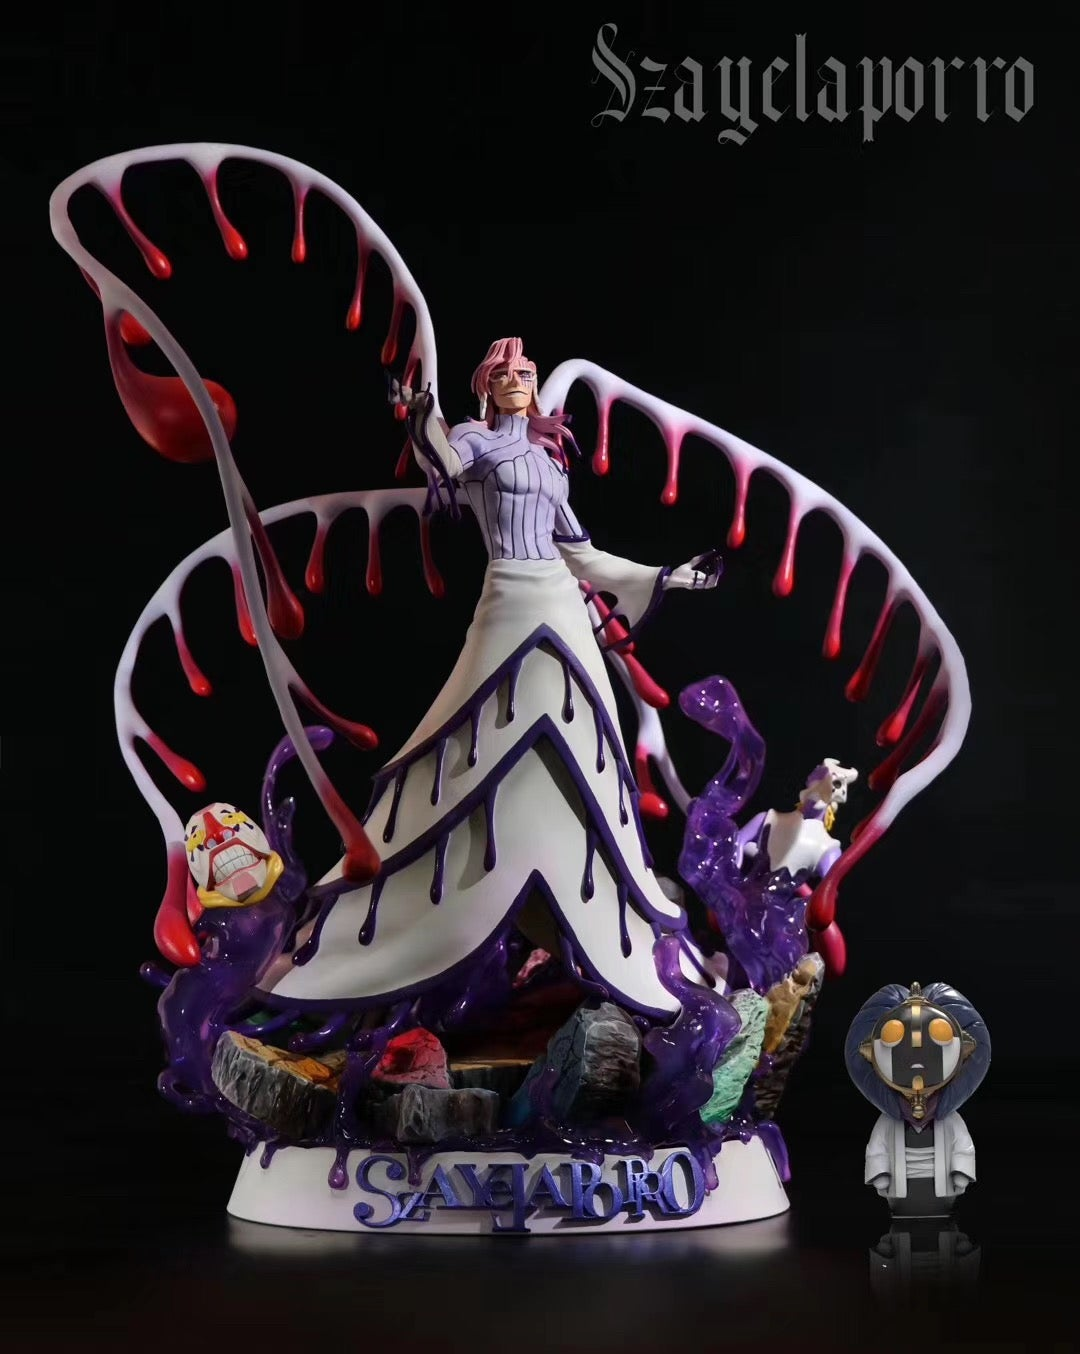 Image of [In-Stock]Bleach BP Studio SzayelAporro 1:8 Resin Statue